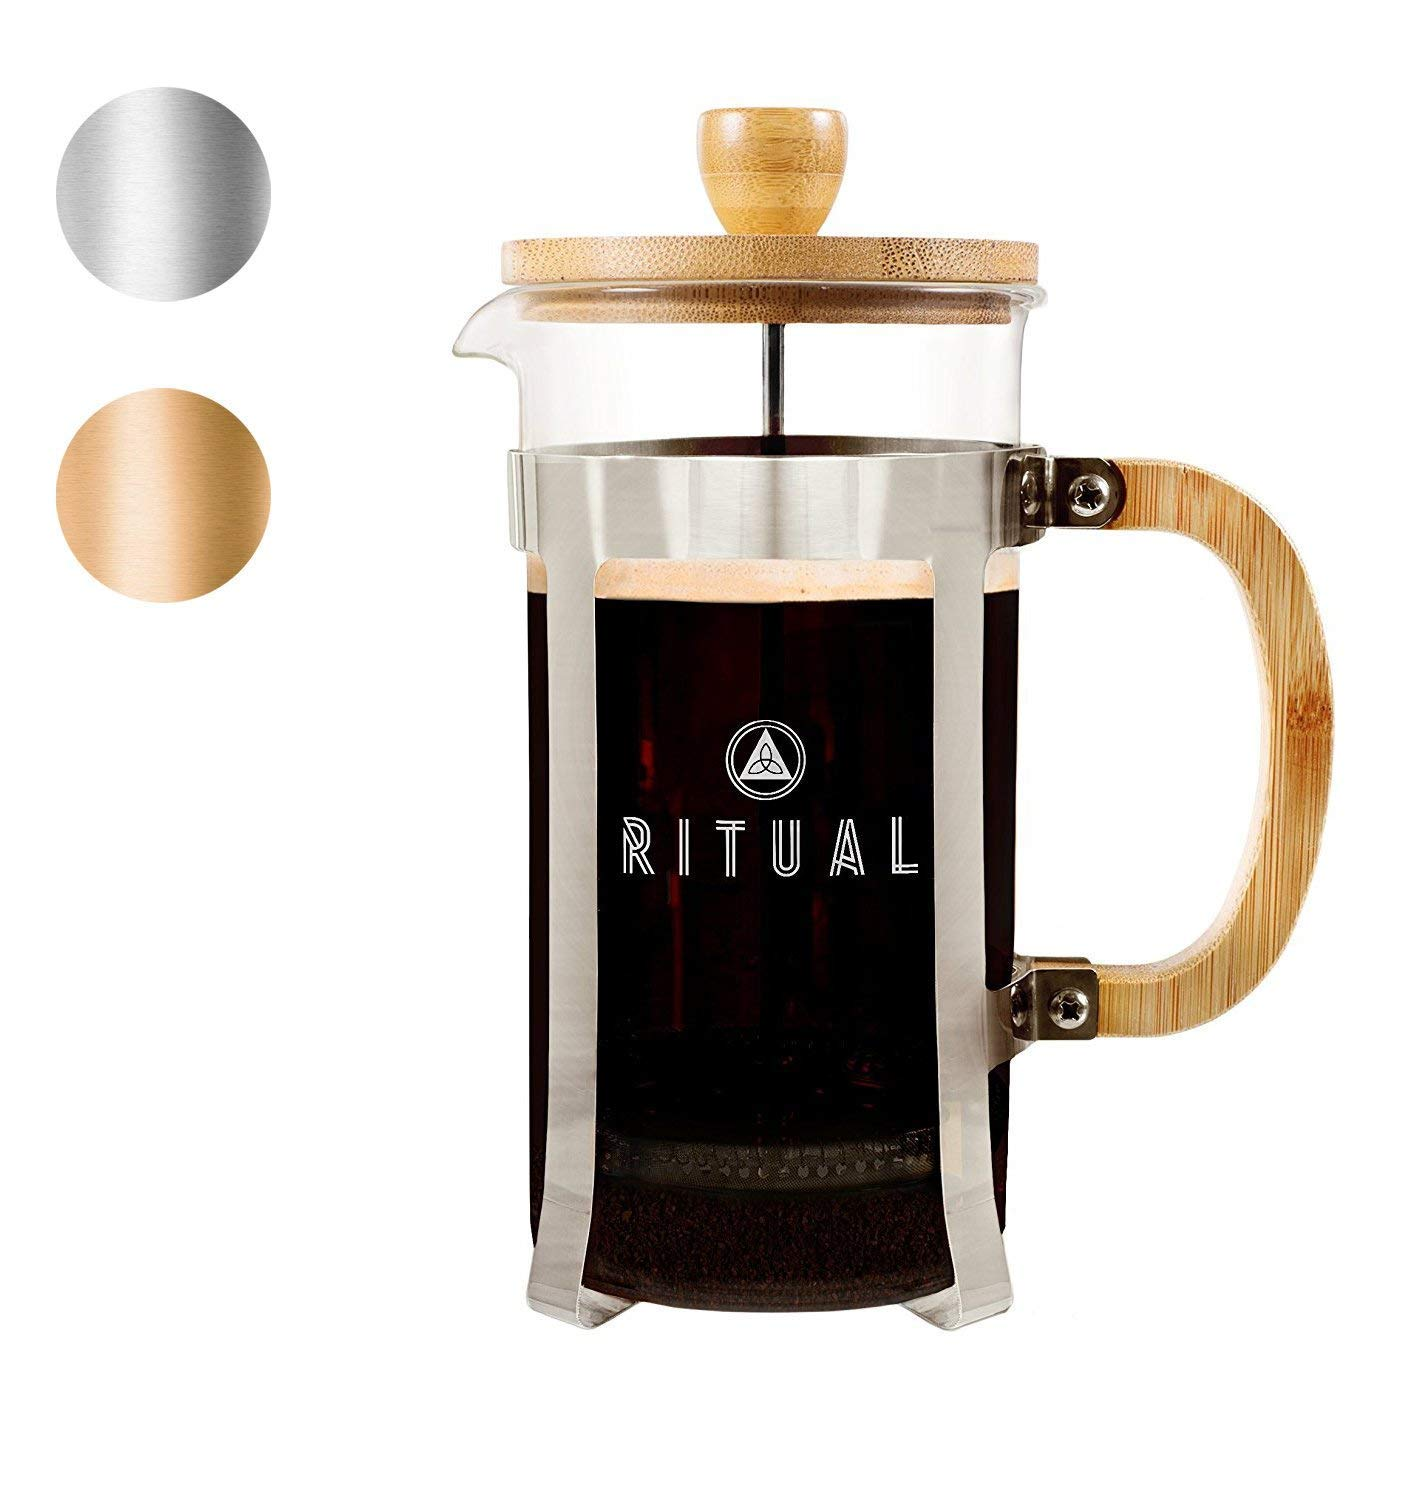 Ritual French Coffee Press (New 2019 Version), Bamboo Wood, Borosilicate Glass, and Stainless Steel, Coffee & Tea Maker with Bonus Filter 36oz/1000ml by Ritual